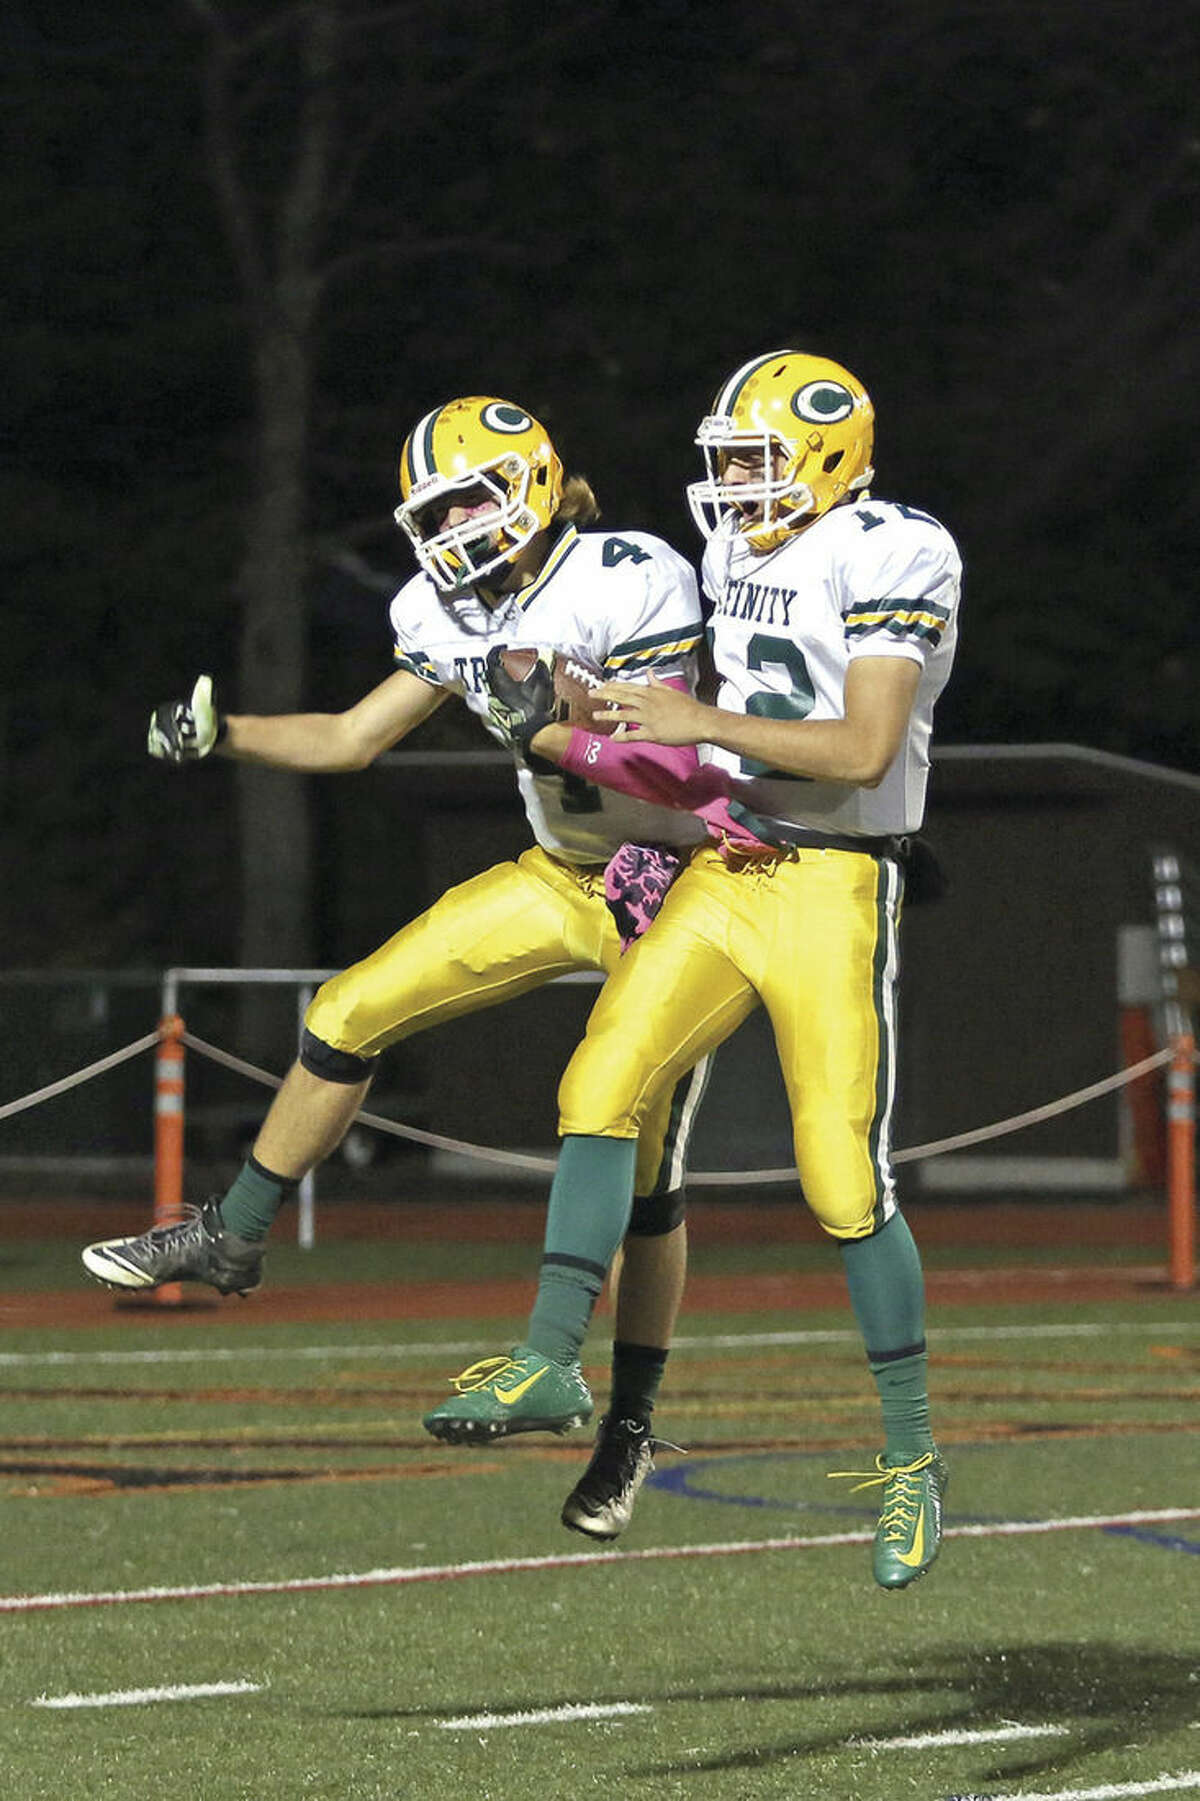 Photo by Danielle Calloway Trinity Catholic's Johnny Somers, left, is congratulated by quarterback Anthony Lombardi after scoring a touchdown during a game against Stamford High School at Boyle Stadium Friday evening.